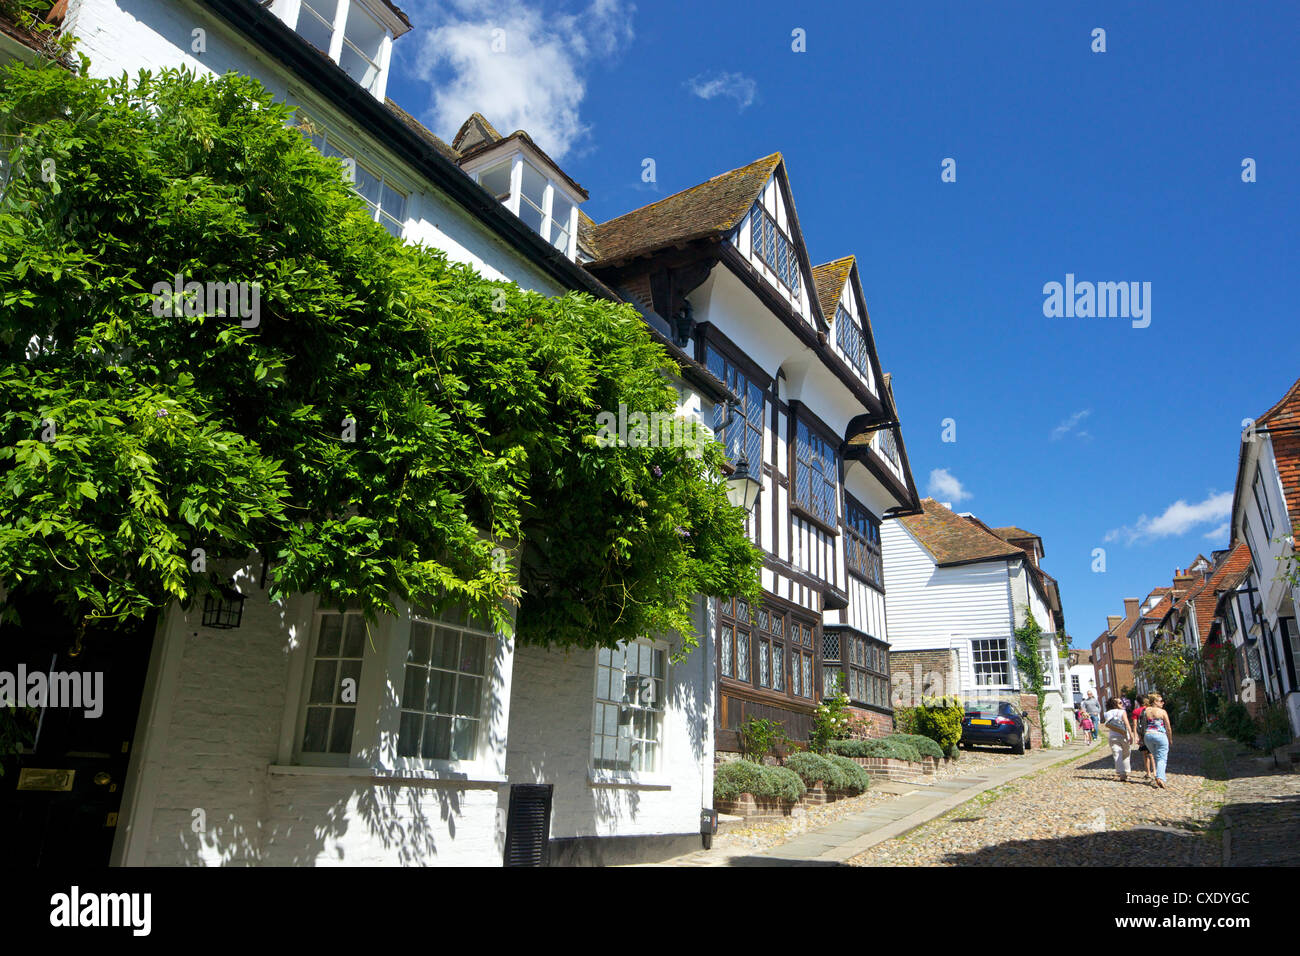 Mermaid Street dans le soleil d'été, Rye, East Sussex, Angleterre, Royaume-Uni, Europe Photo Stock